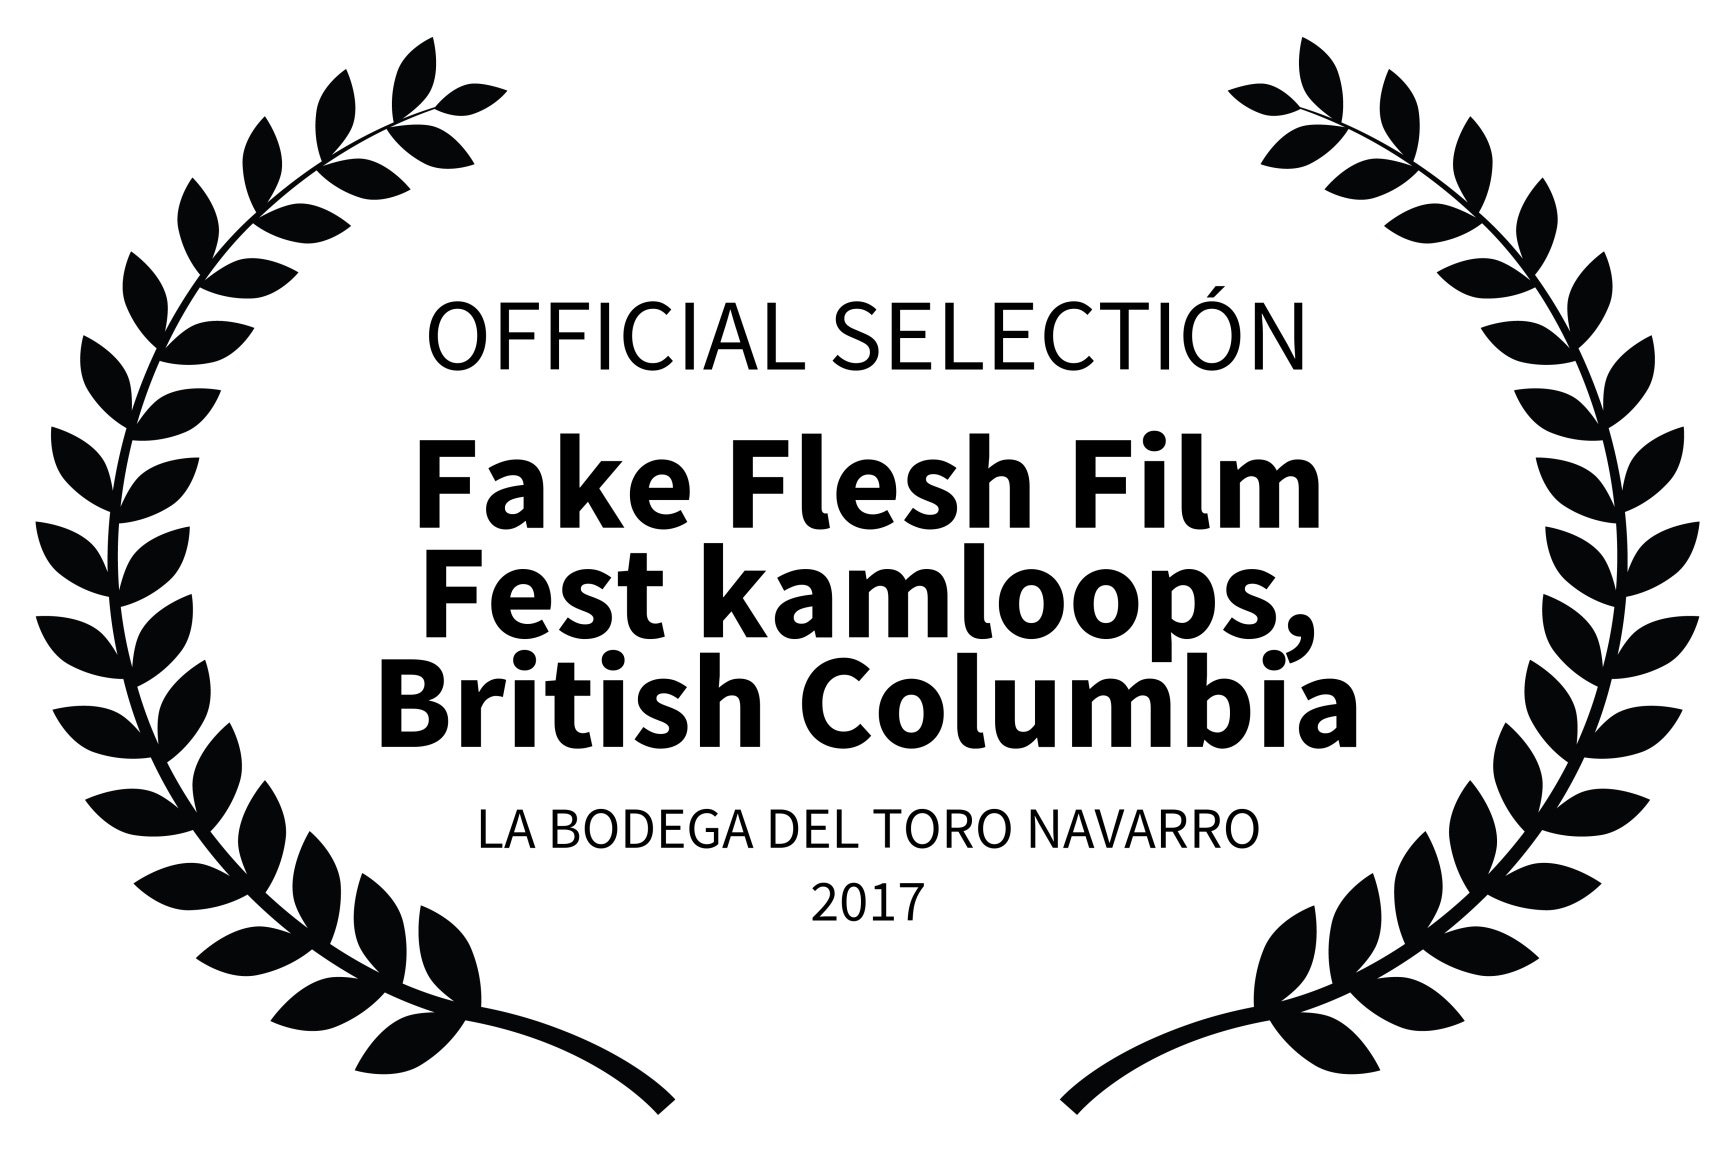 OFFICIAL SELECTIN - Fake Flesh Film Fest kamloops British Columbia - LA BODEGA DEL TORO NAVARRO 2017